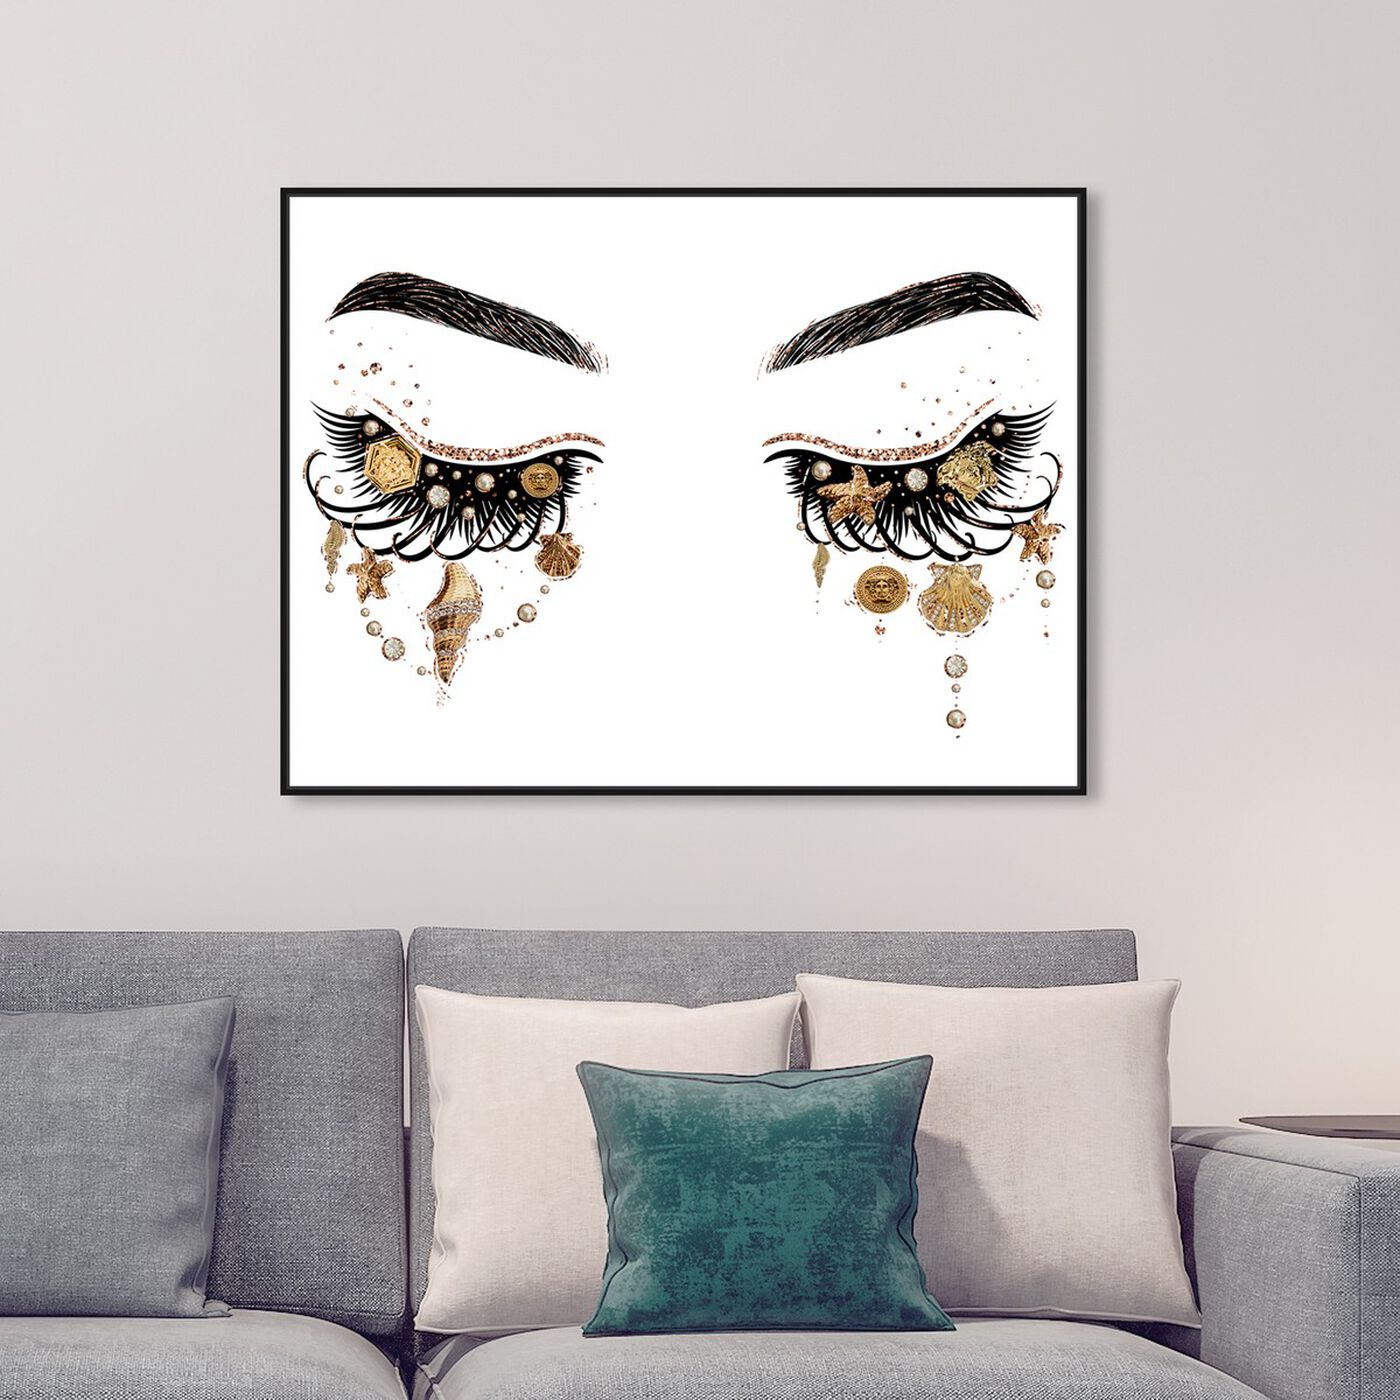 Hanging view of Gianni Eyes and Treasures featuring fashion and glam and makeup art.